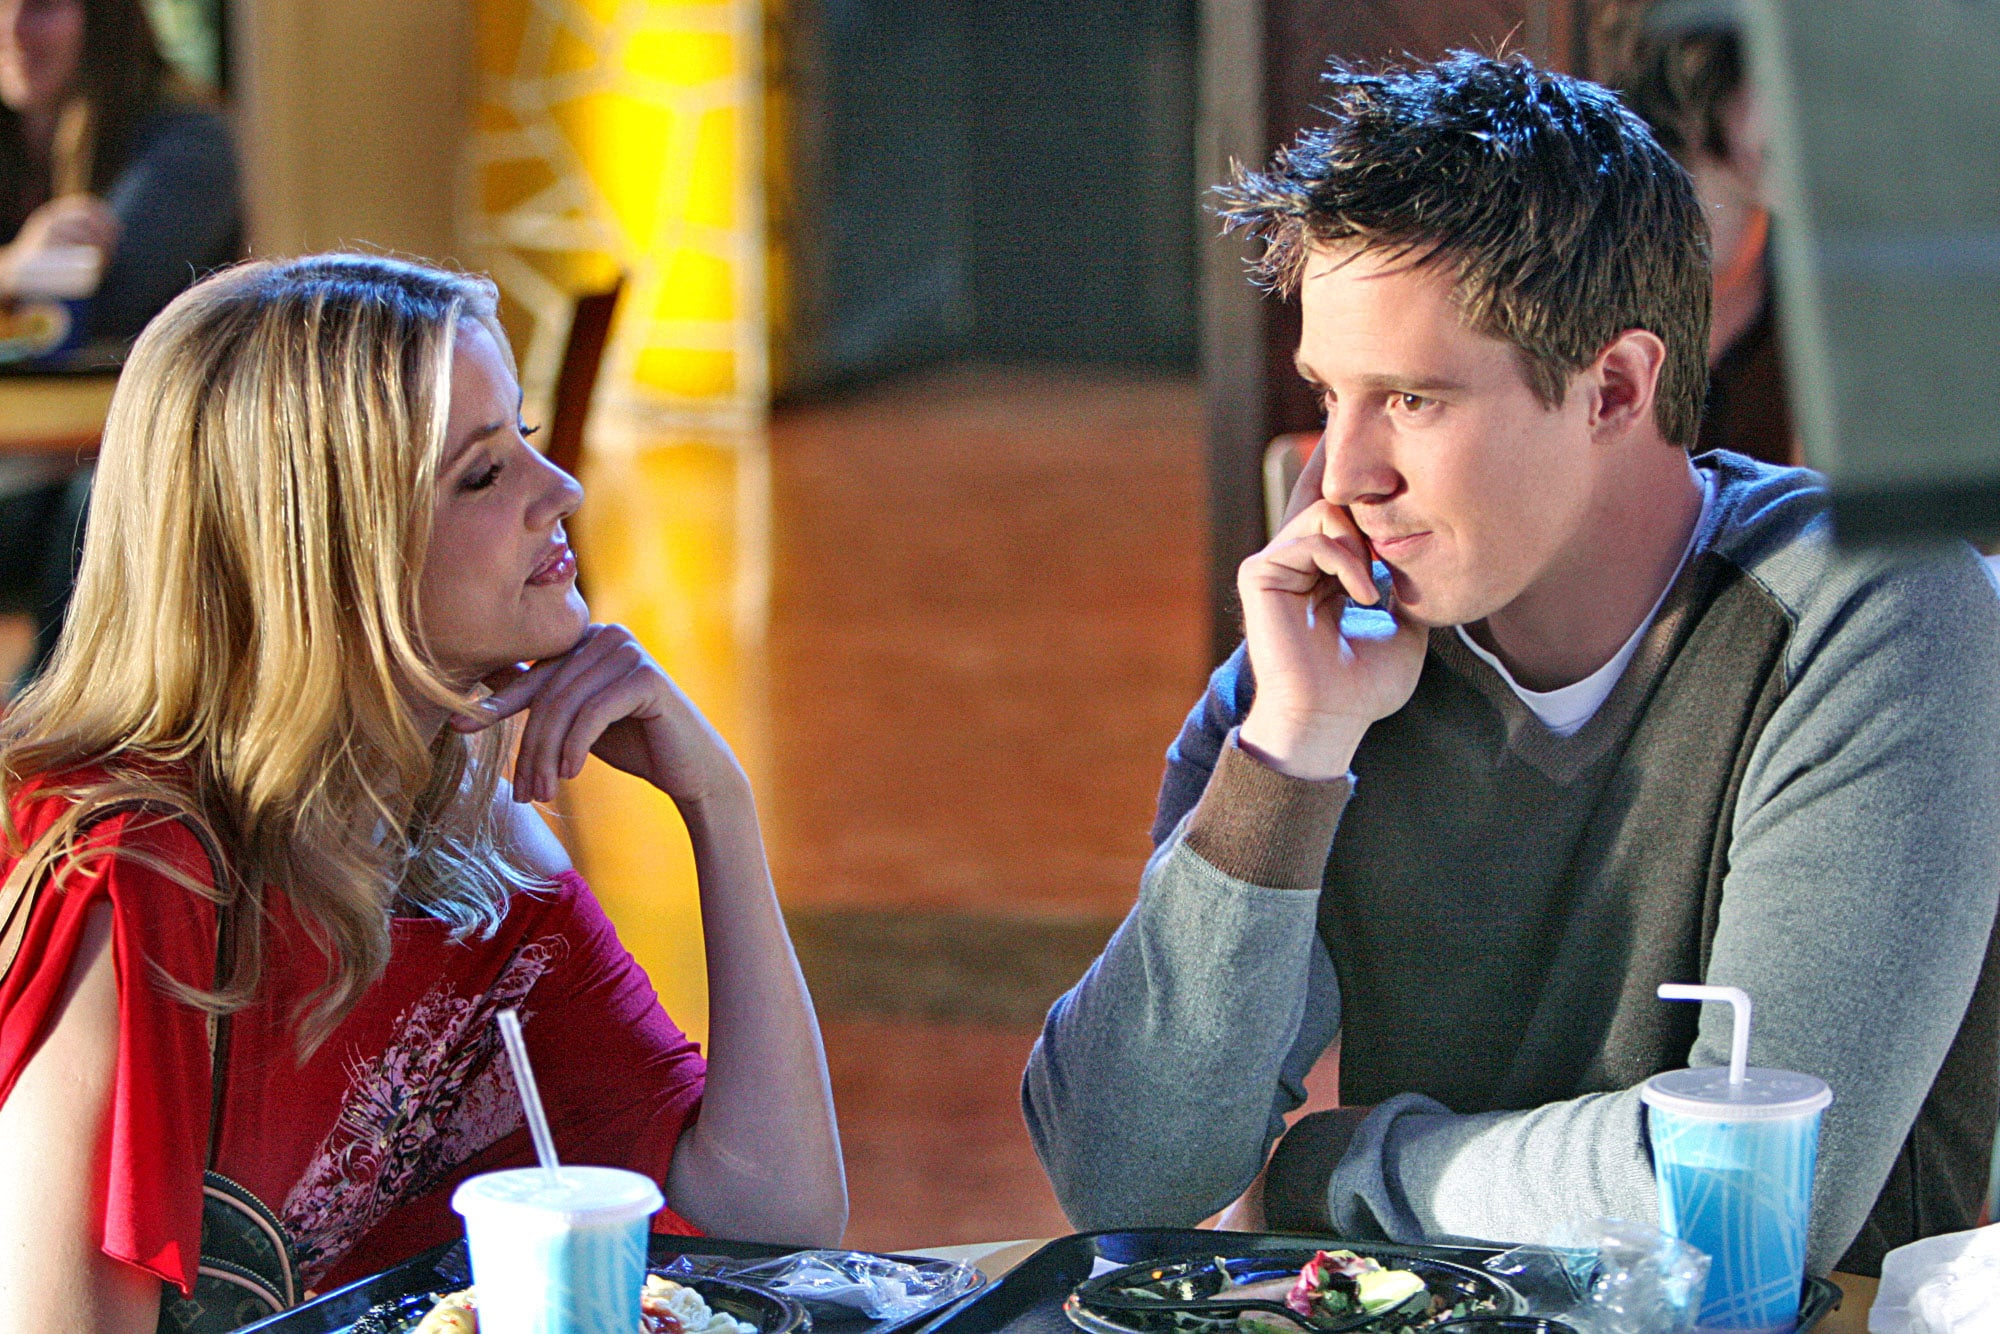 VERONICA MARS, Julie Gonzalo, Jason Dohring, 'Mars, Bars', (Season 3, aired February 20, 2007) 2004-07. Photo: Michael Desmond /  Warner Bros. Television / Courtesy Everett Collection